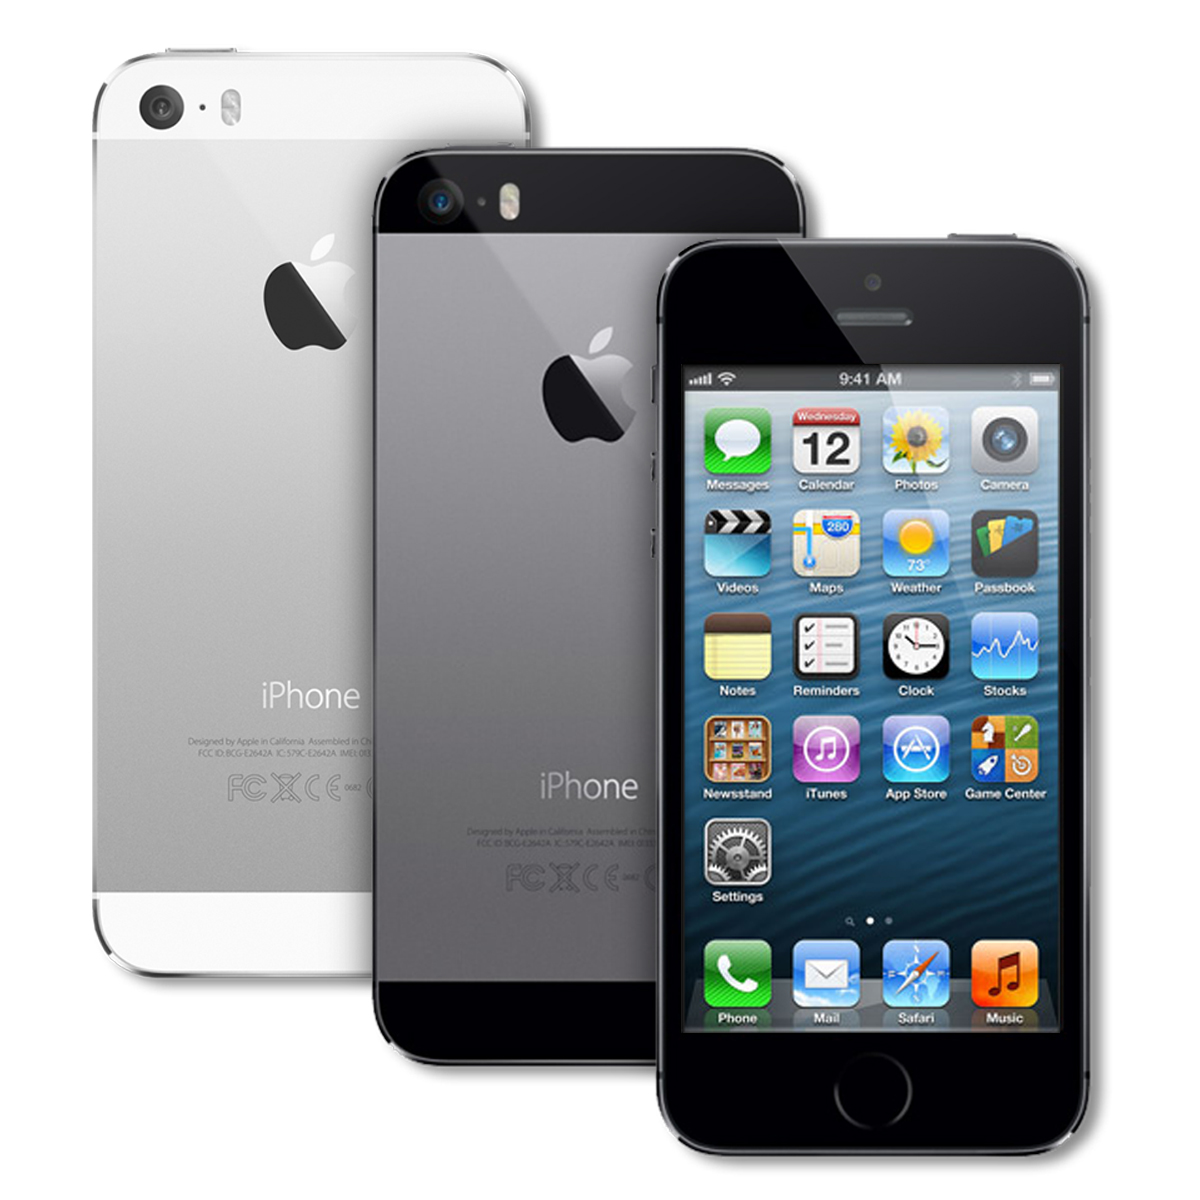 apple iphone 5s 16gb certified refurbished factory. Black Bedroom Furniture Sets. Home Design Ideas